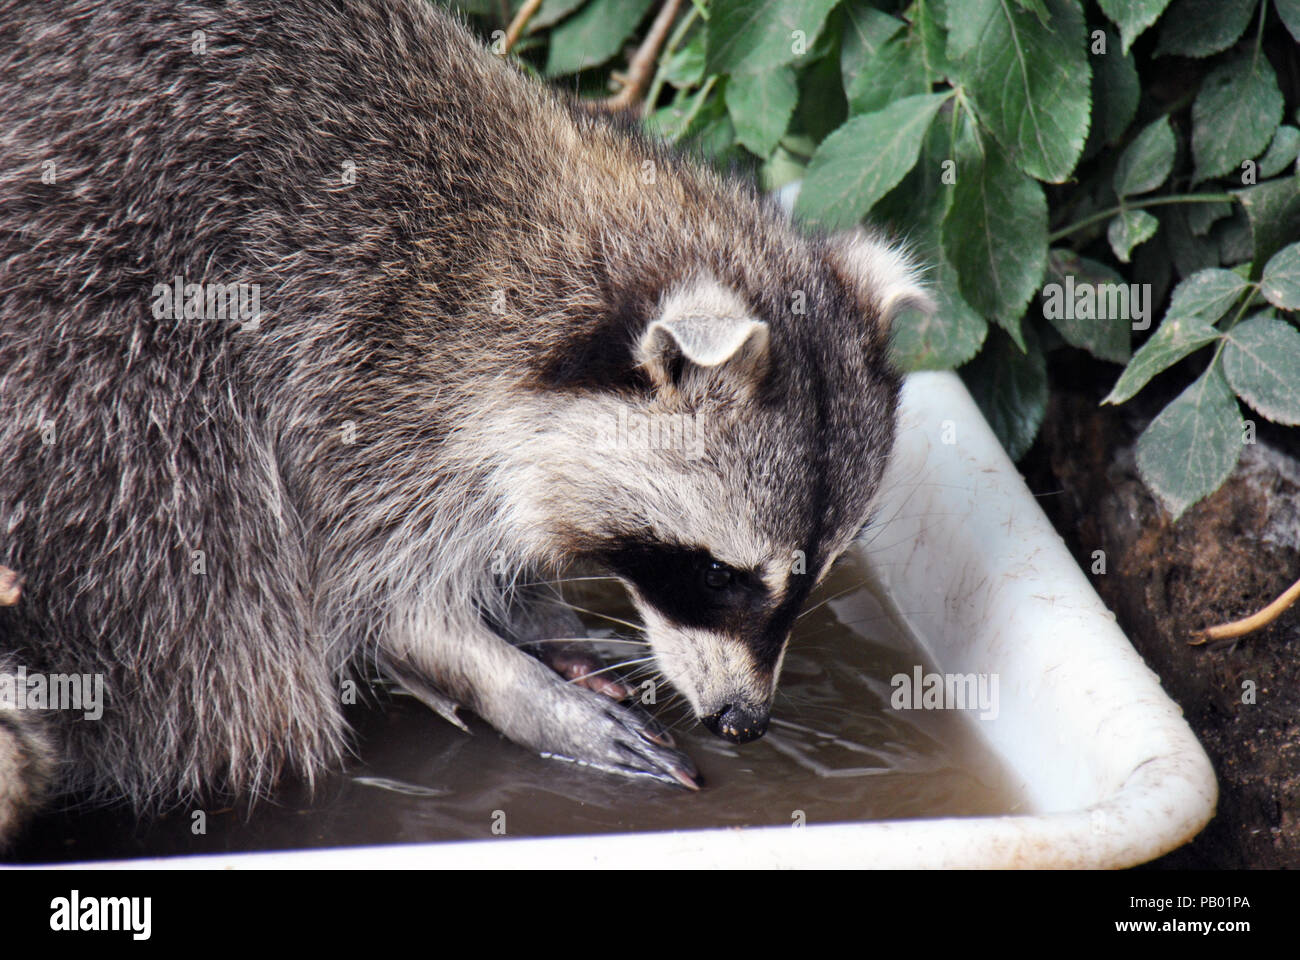 Furry Raccoon Washing Its Food In Water Before Eating Stock Photo